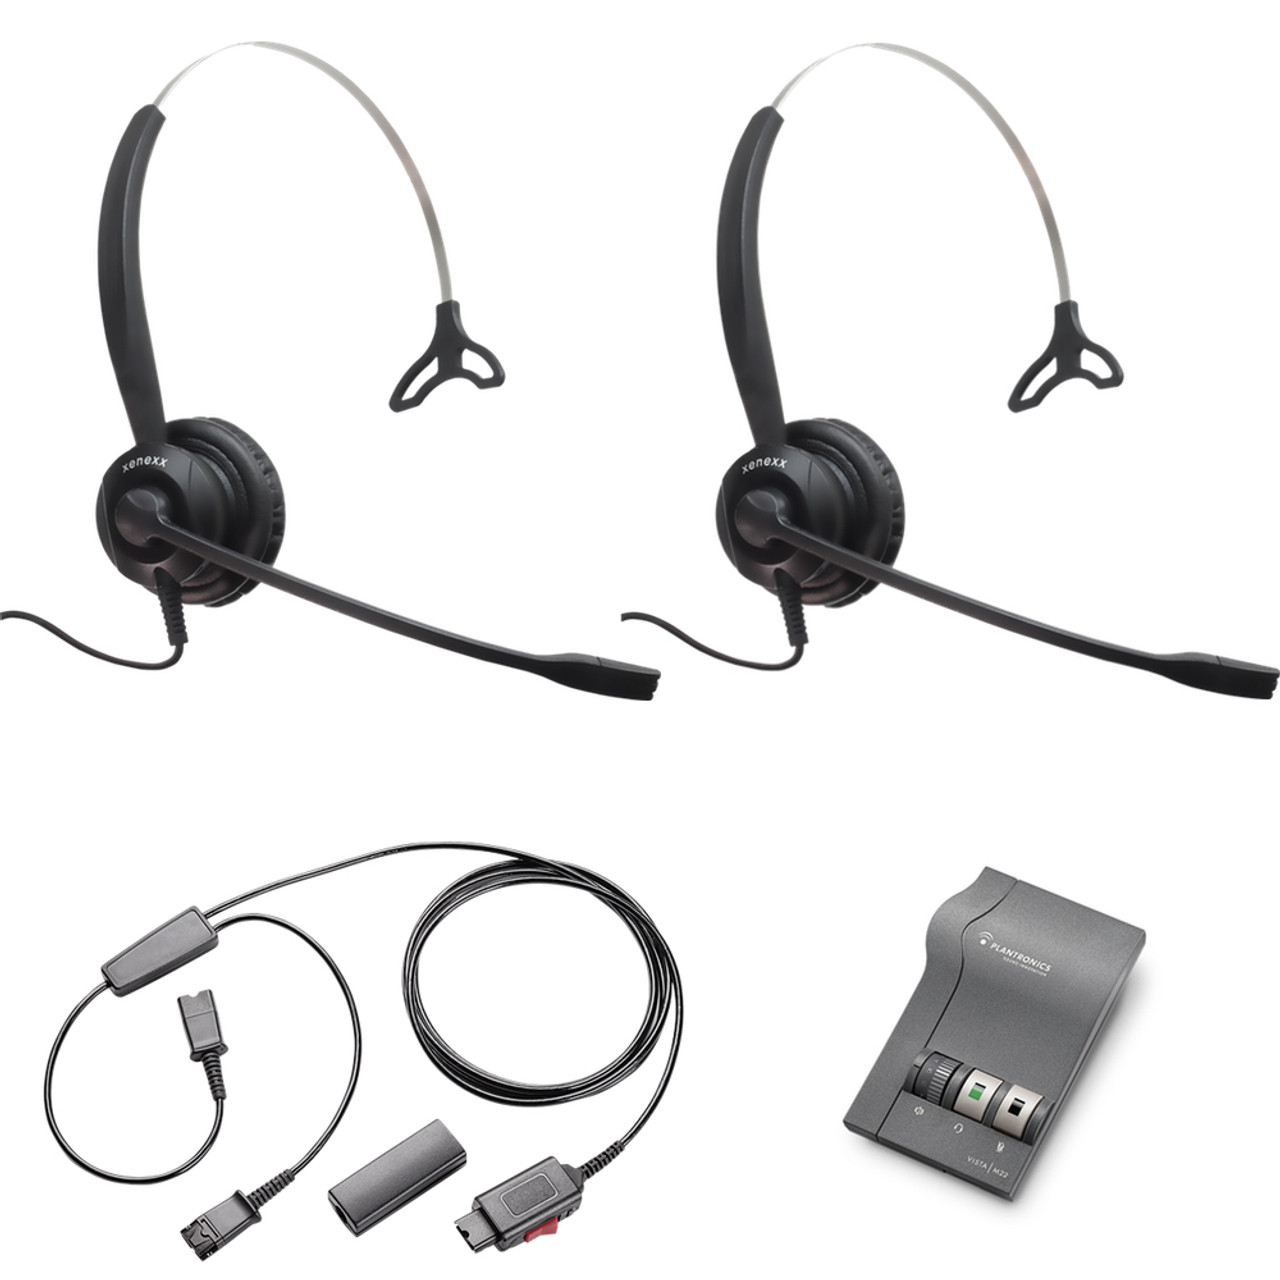 Xs 820 Mono Headset Training Bundle Headsets M22 Digital Headser Adapter Y Training Splitter Cord 27019 03 With Mute Button Use For Coaching Supervising Training Monitoring